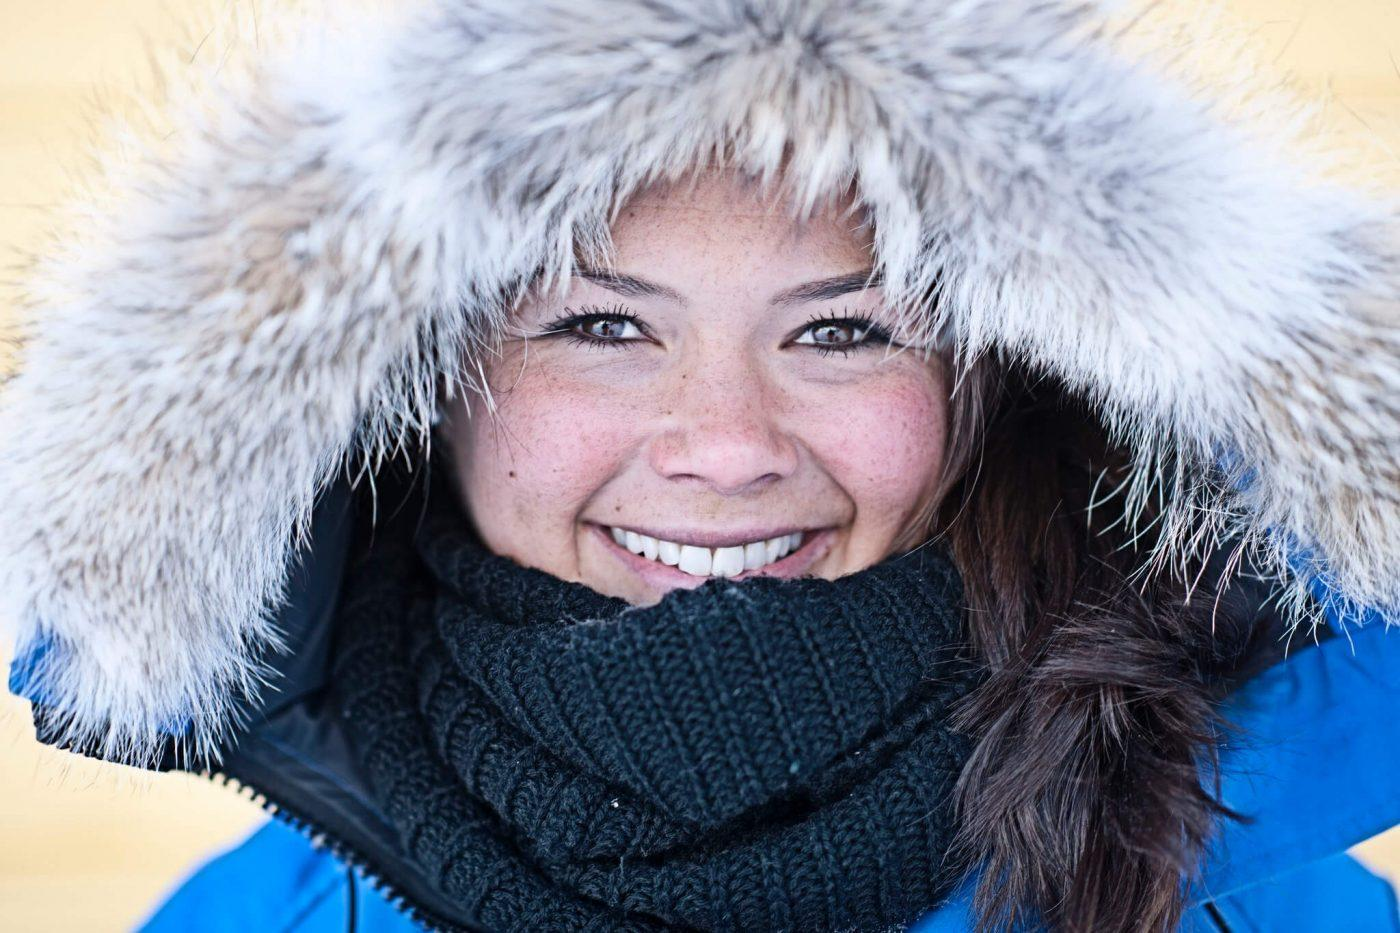 Smiling young greenlandic woman in winter, by Andre Schoenherr